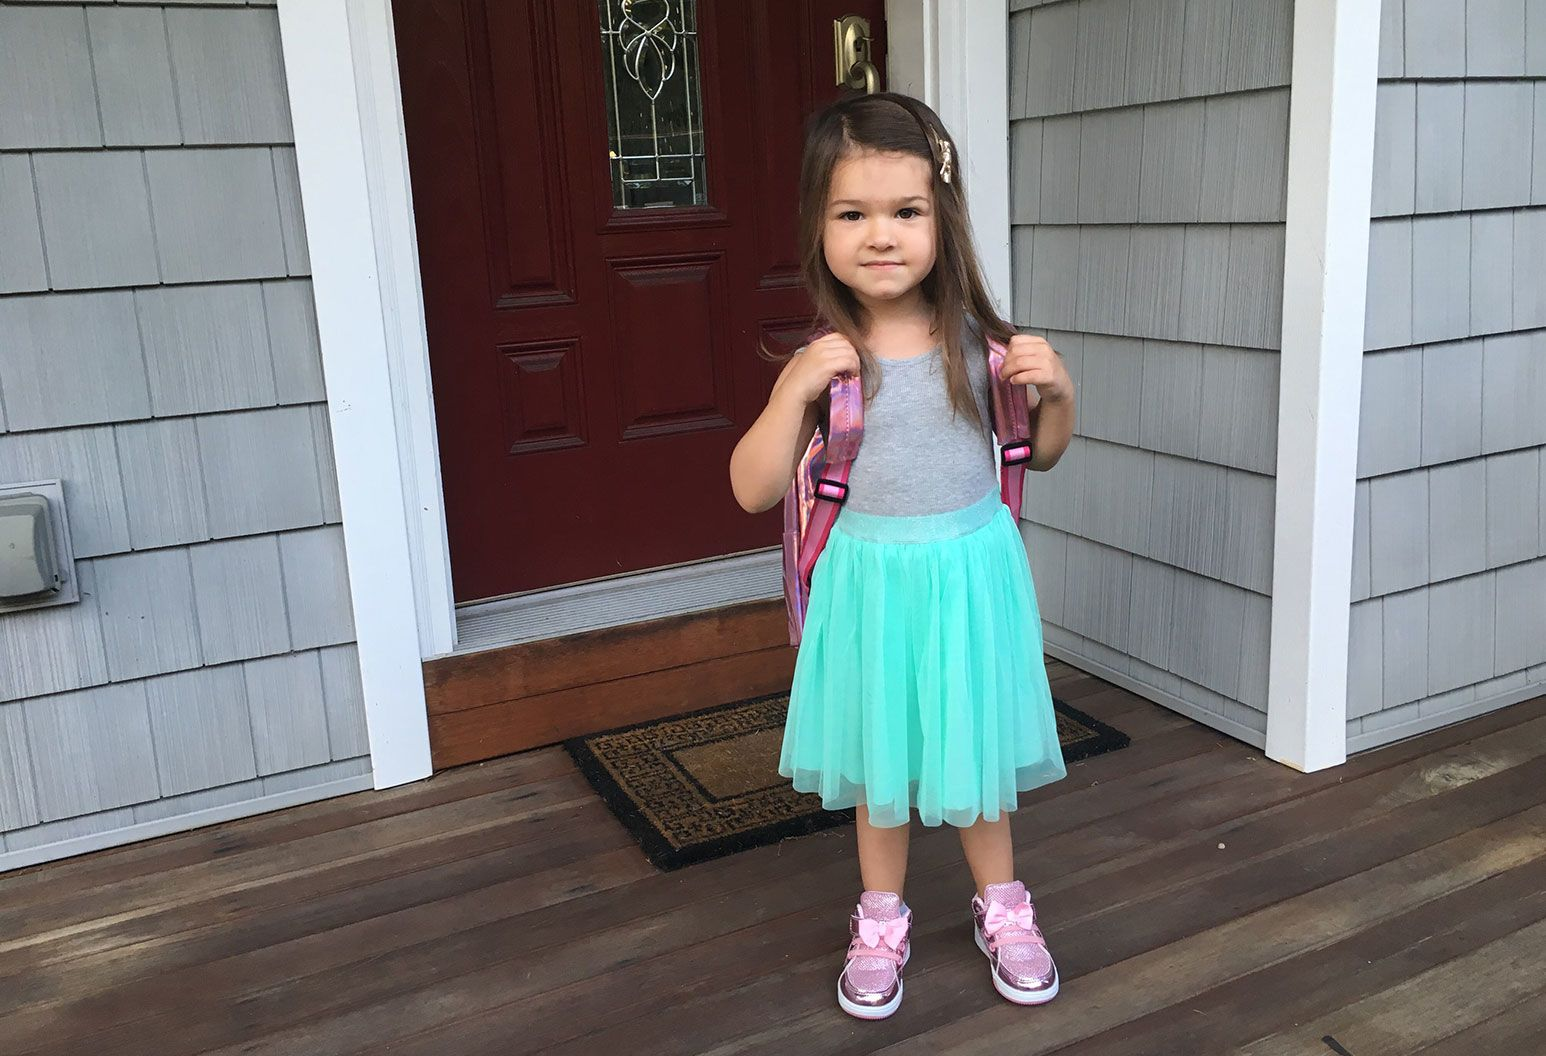 A toddler with long hair, a purple book bag, grey top and teal lace skirt stands in front of a doorway posing for a photo. She has a determined look on her face.